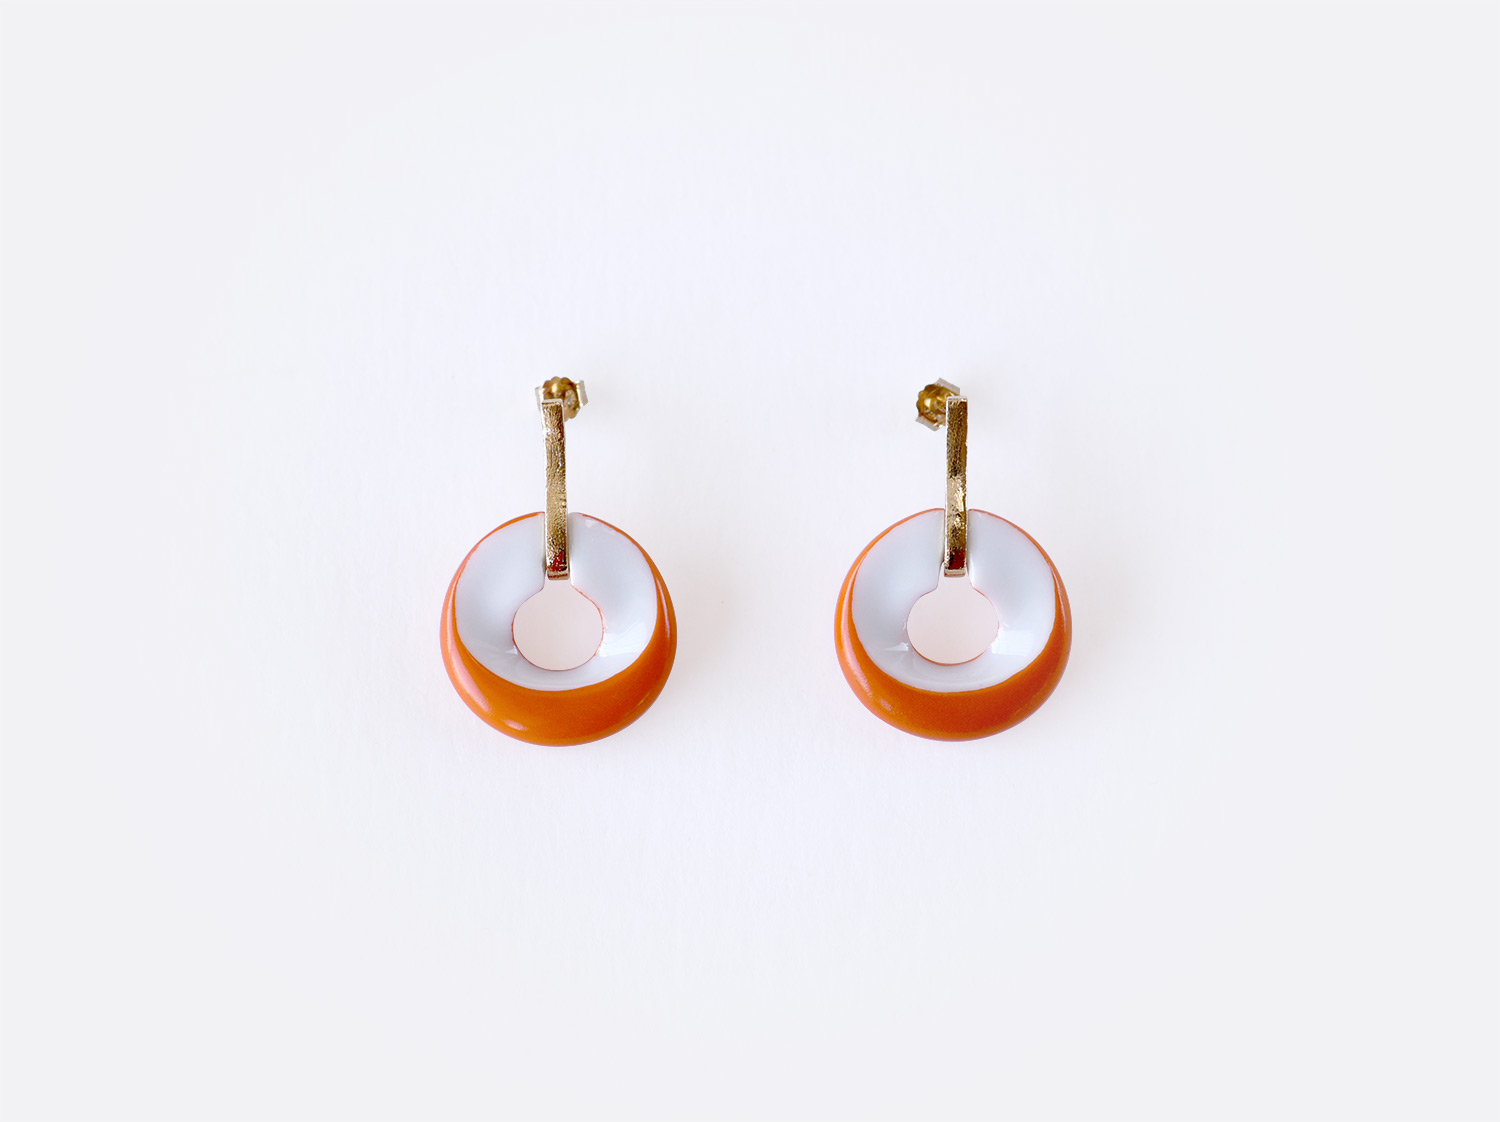 Boucles d'oreilles Alba orange en porcelaine de la collection ALBA ORANGE Bernardaud